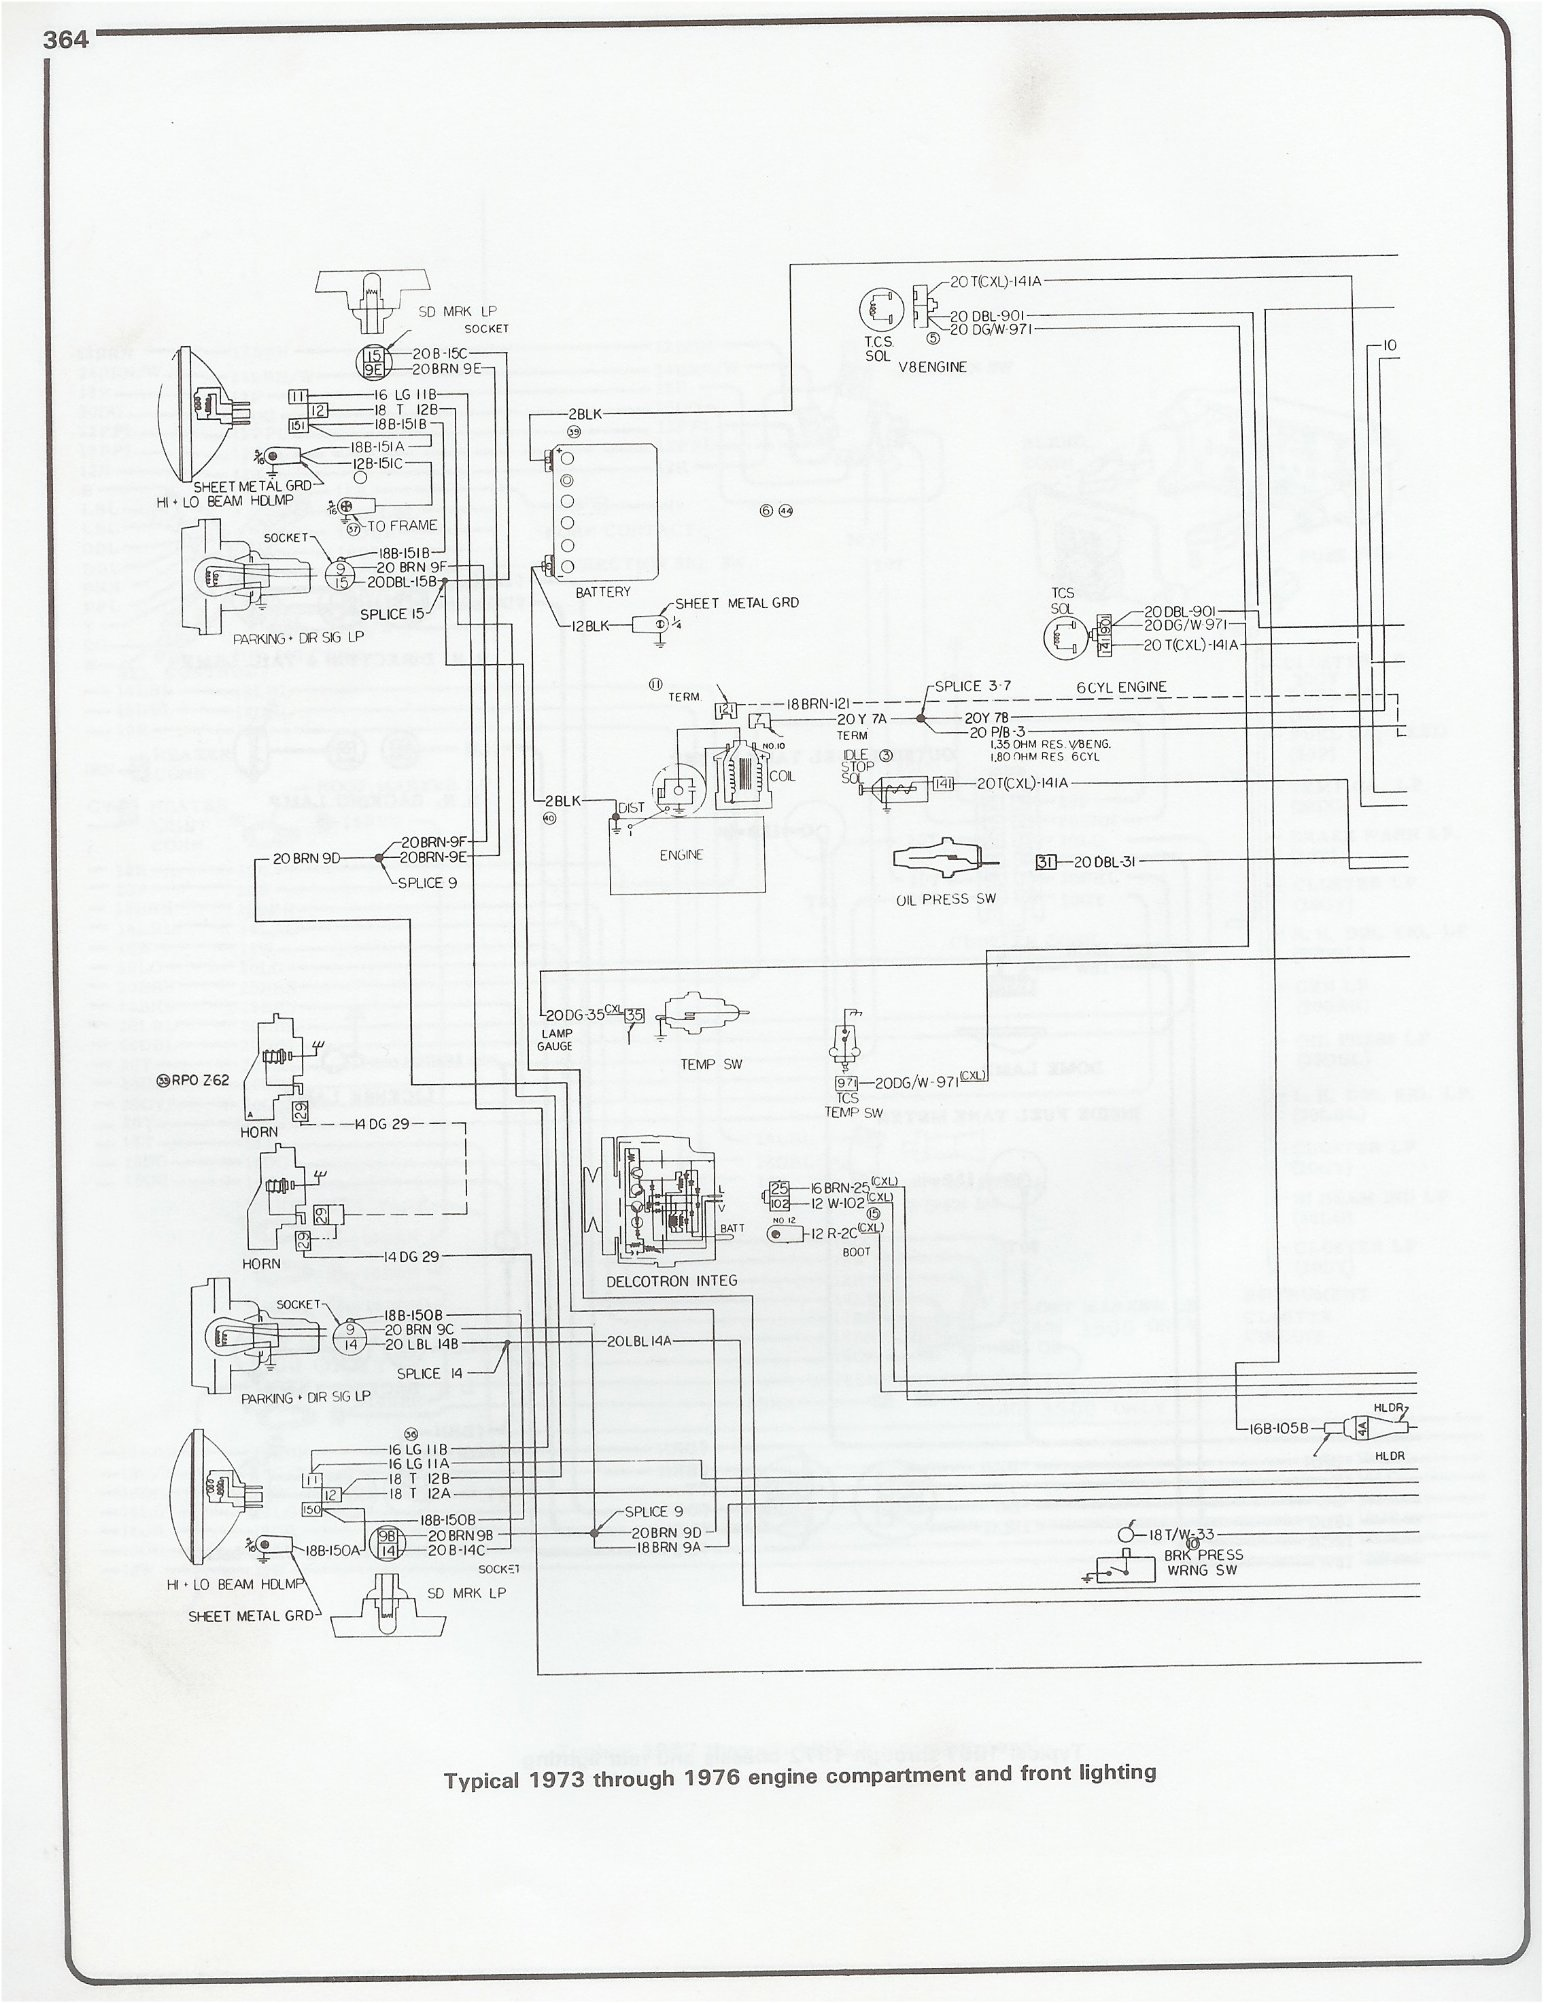 complete 73 87 wiring diagrams rh forum 73 87chevytrucks com 1977 Camaro Wiring Diagram 1972 Camaro Wiring Diagram